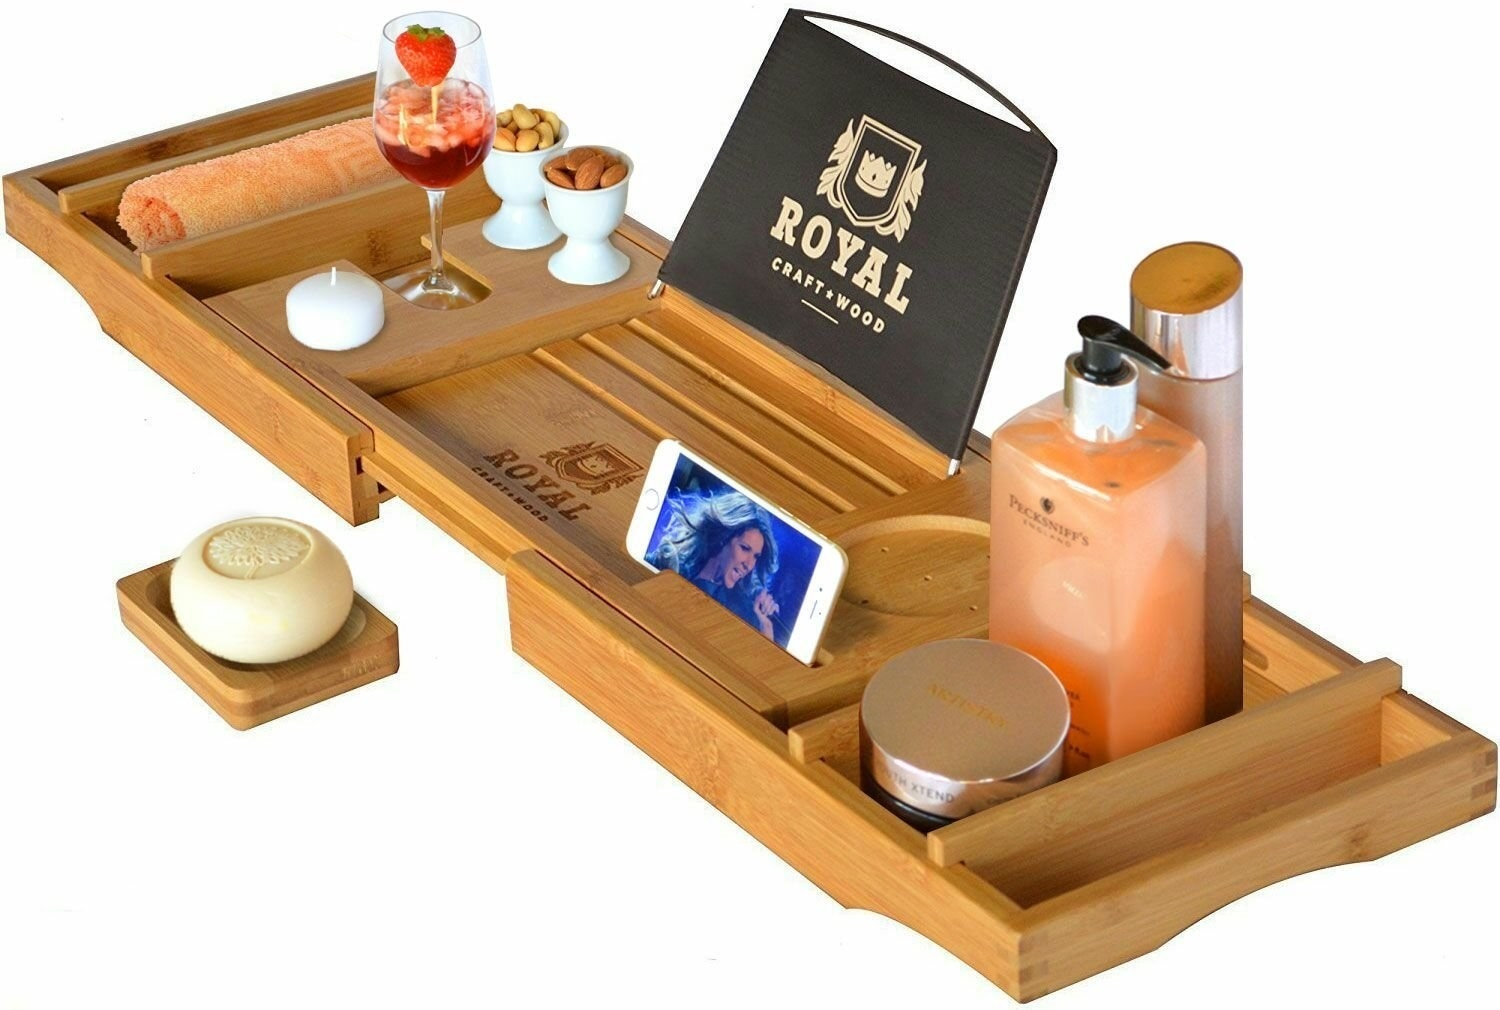 the bath caddy holding an assortment of items